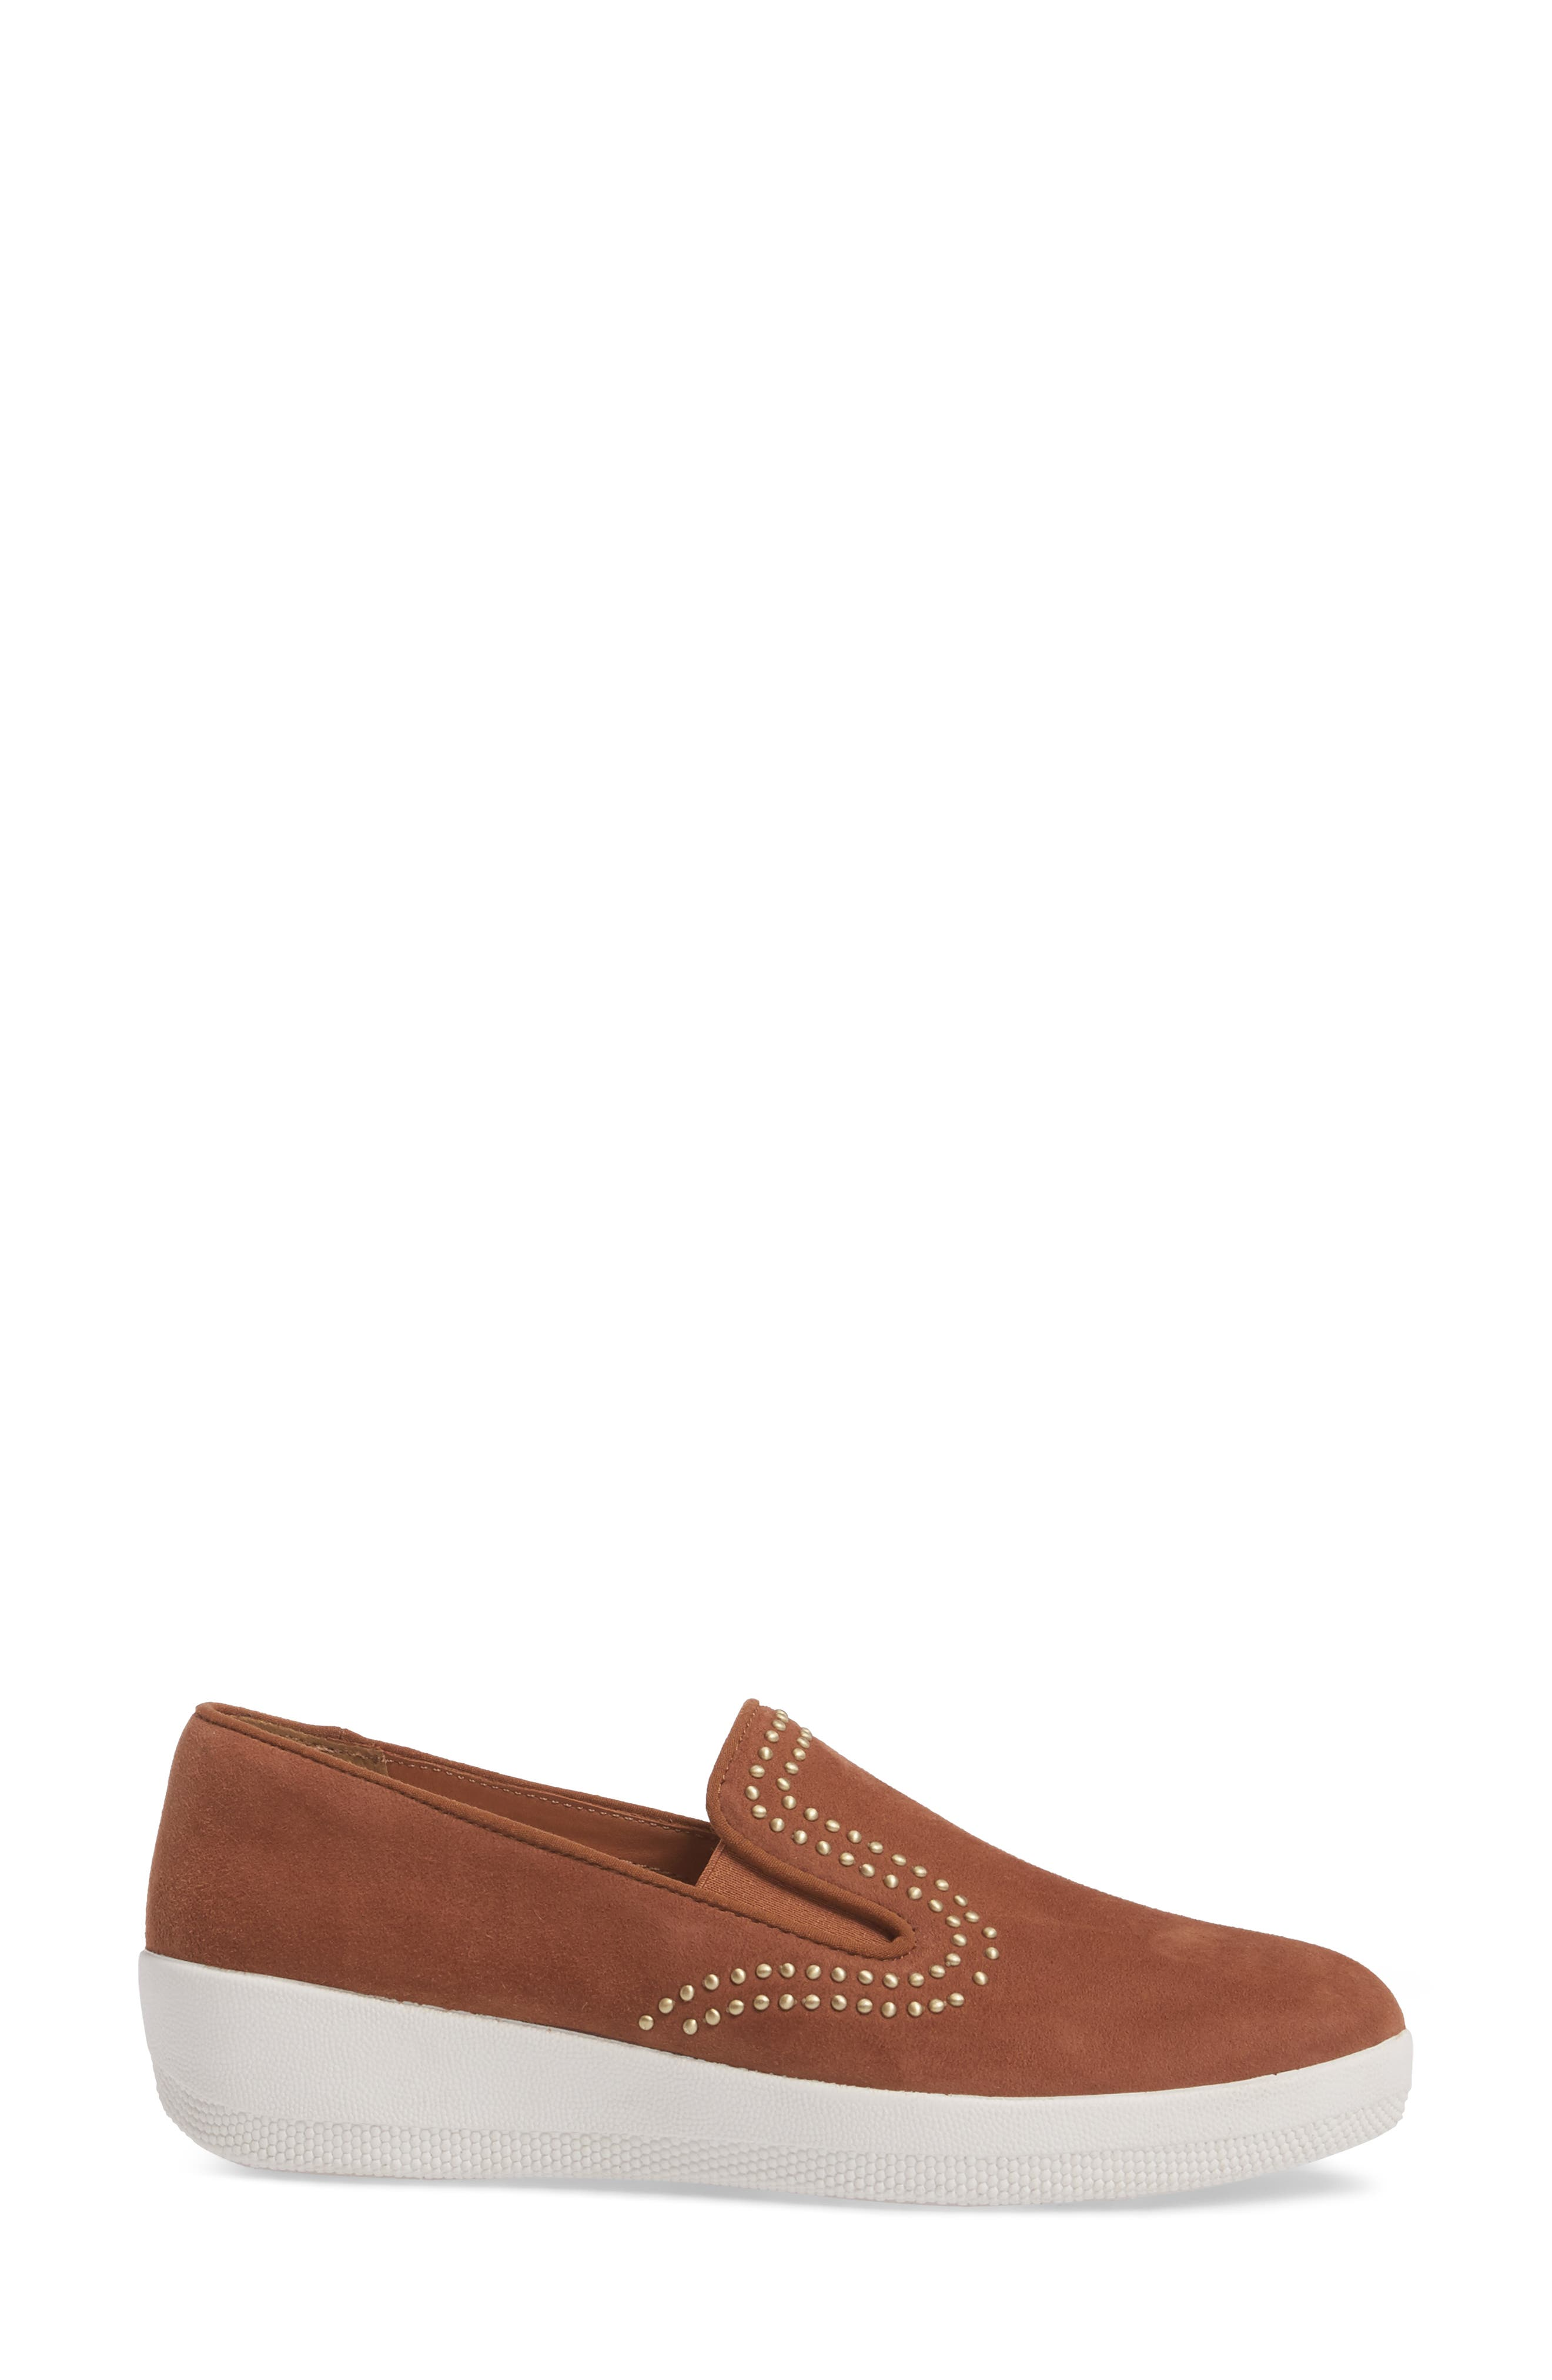 Superskate Studded Wedge Loafer,                             Alternate thumbnail 3, color,                             Tan Faux Suede